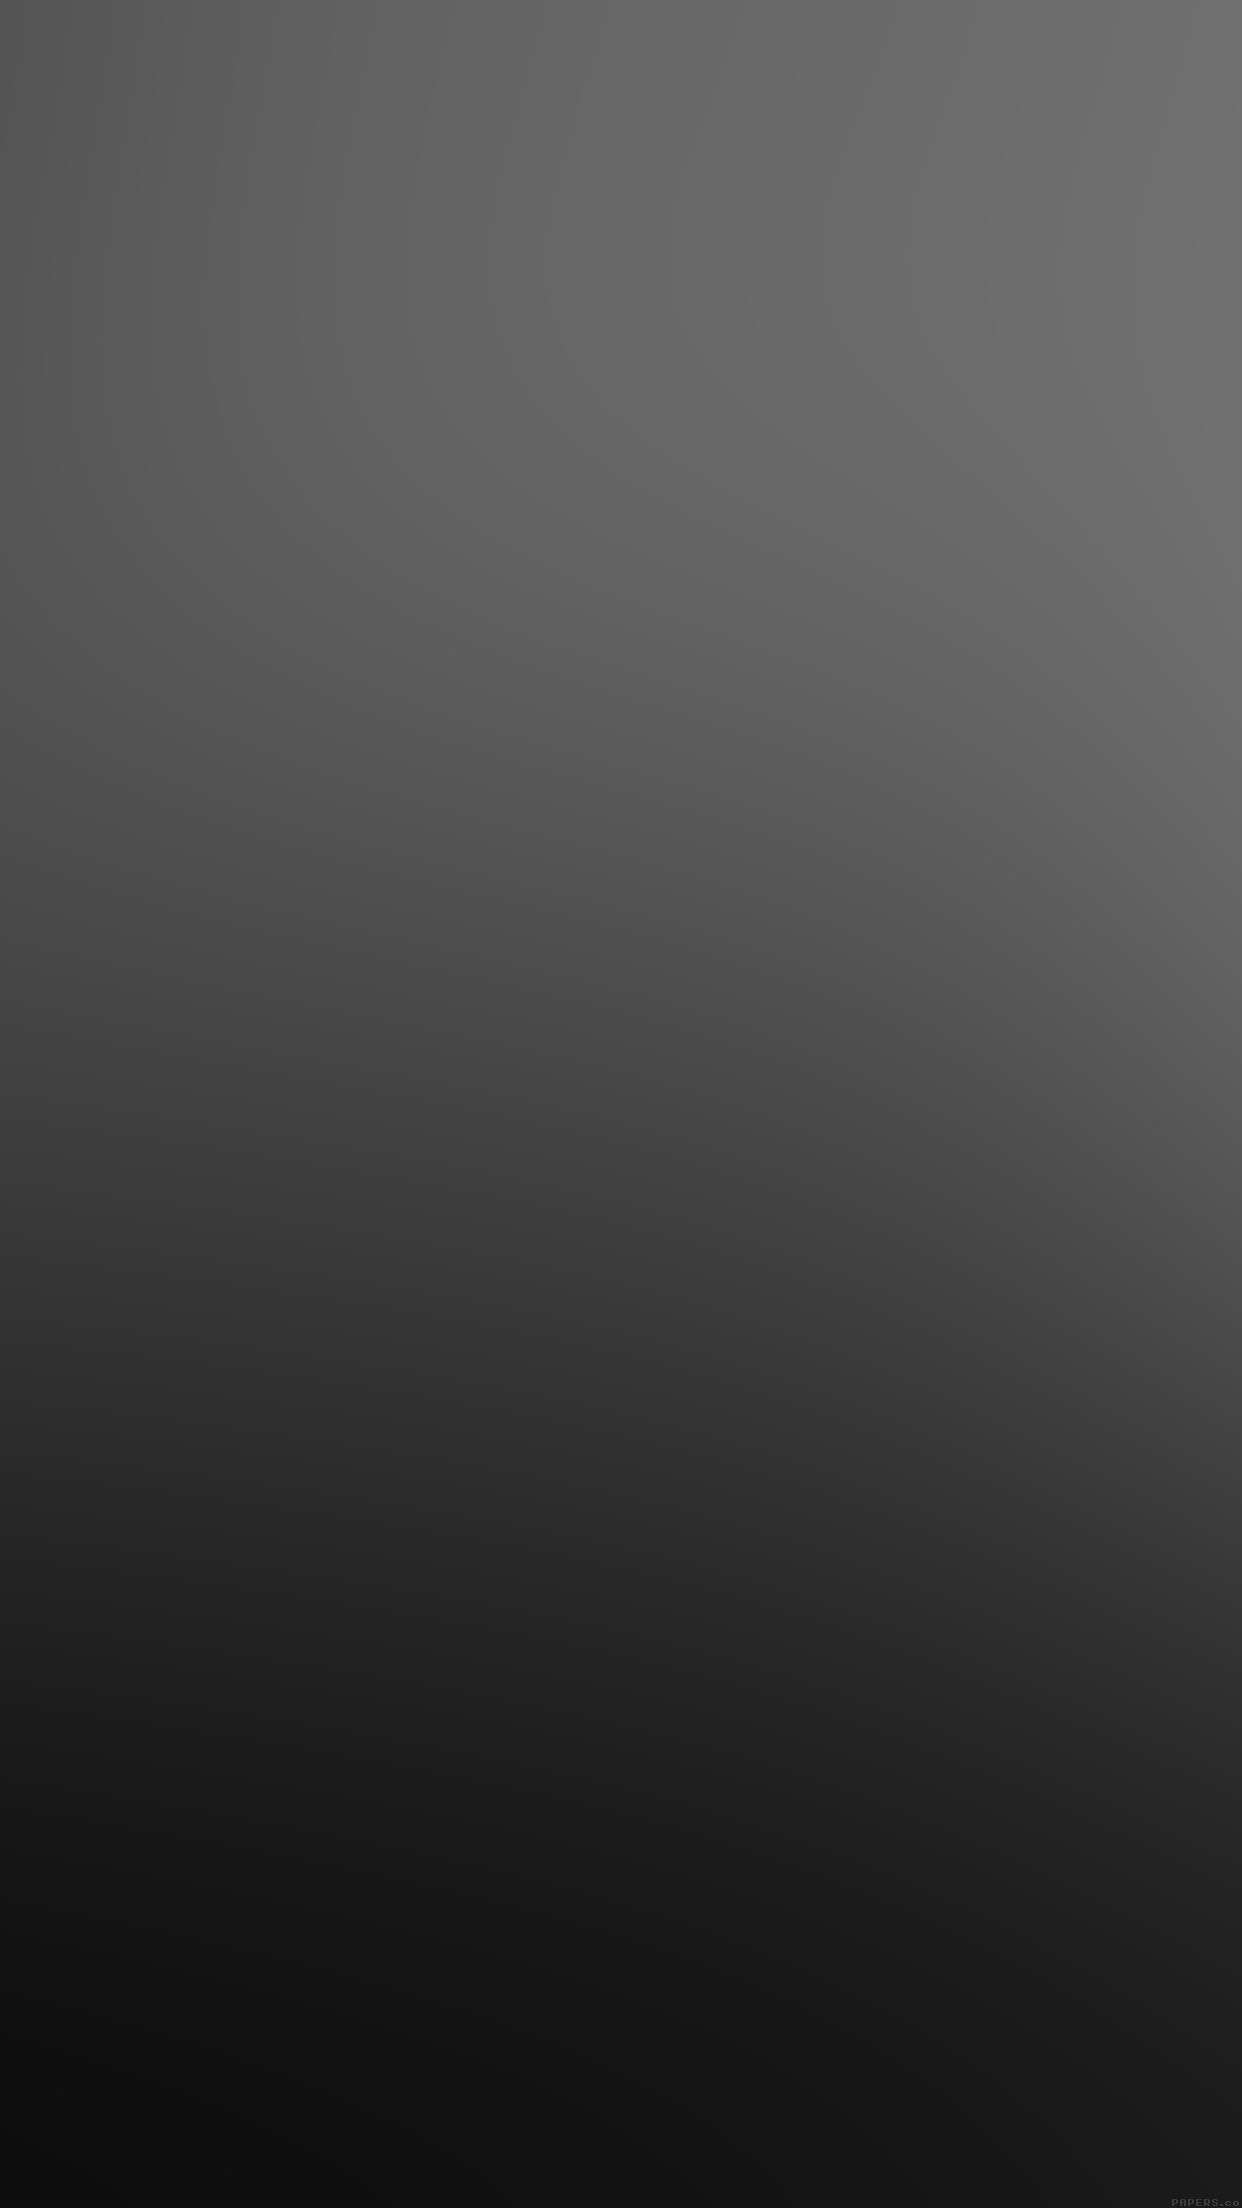 1242x2208 march-apple-event-dark-black-pattern-34-iphone-